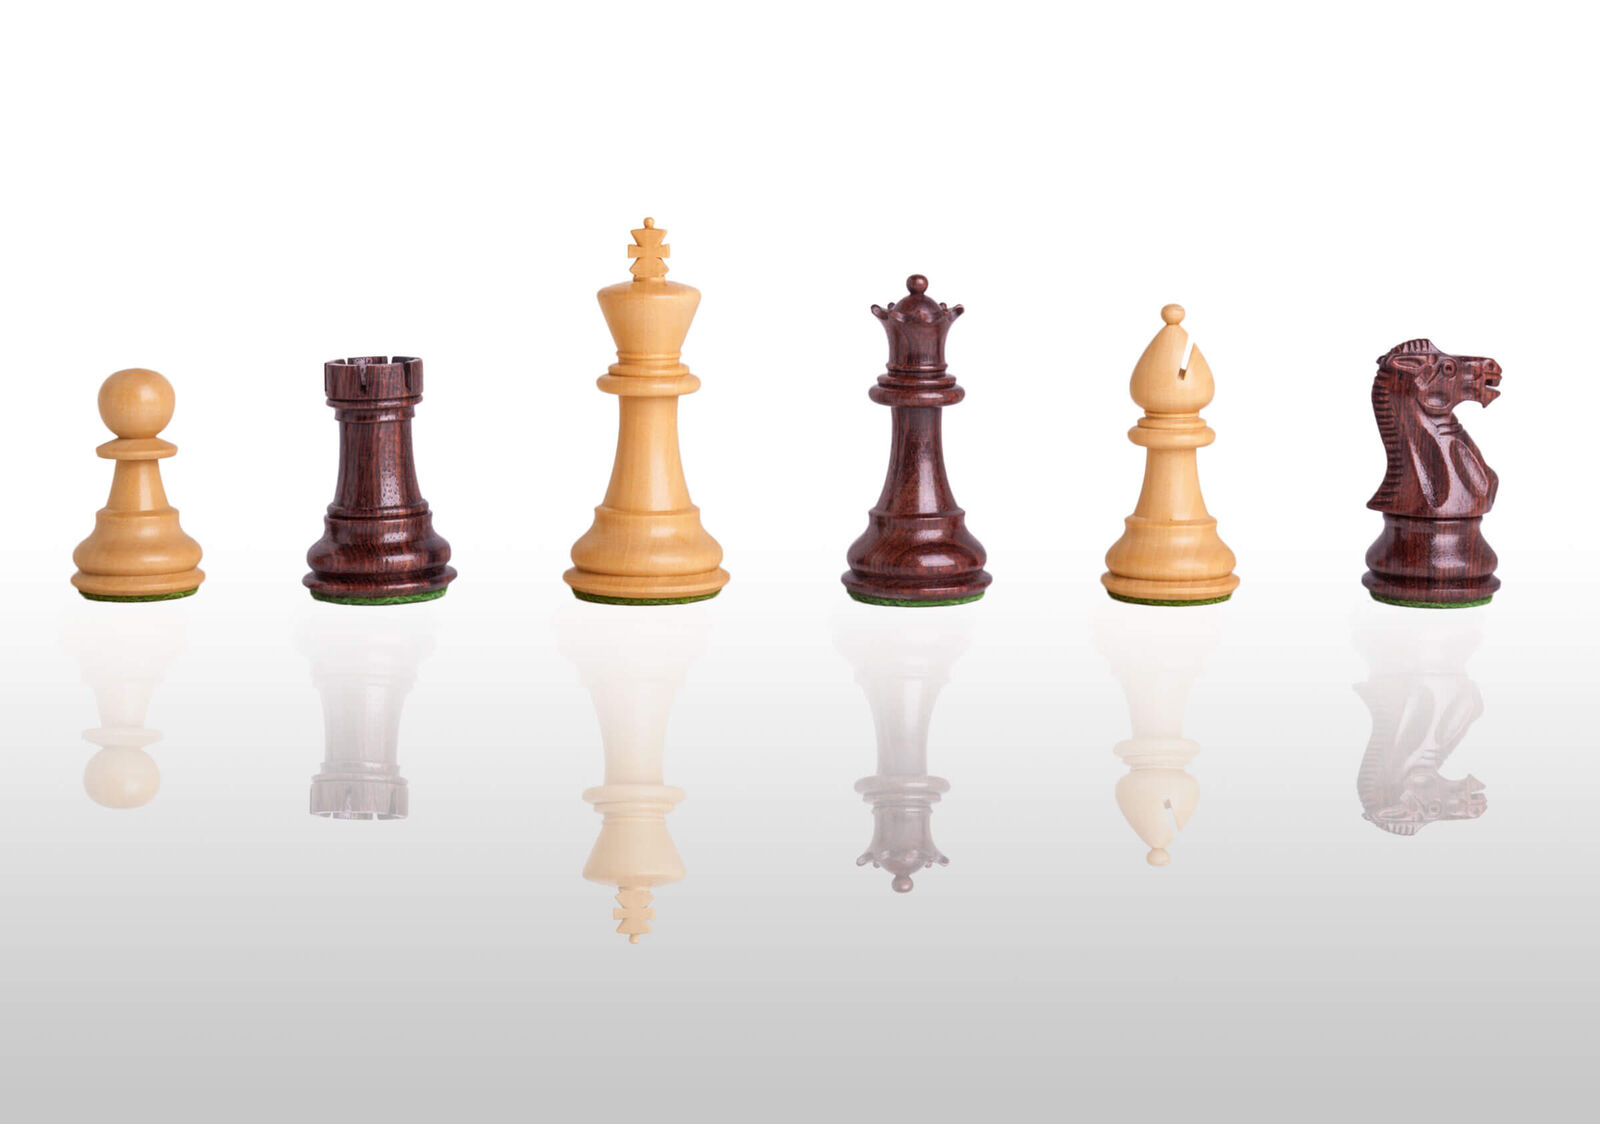 USCF Sales The Classic Chess Set - Pieces Only - 3.0  King - Indian Rosewood